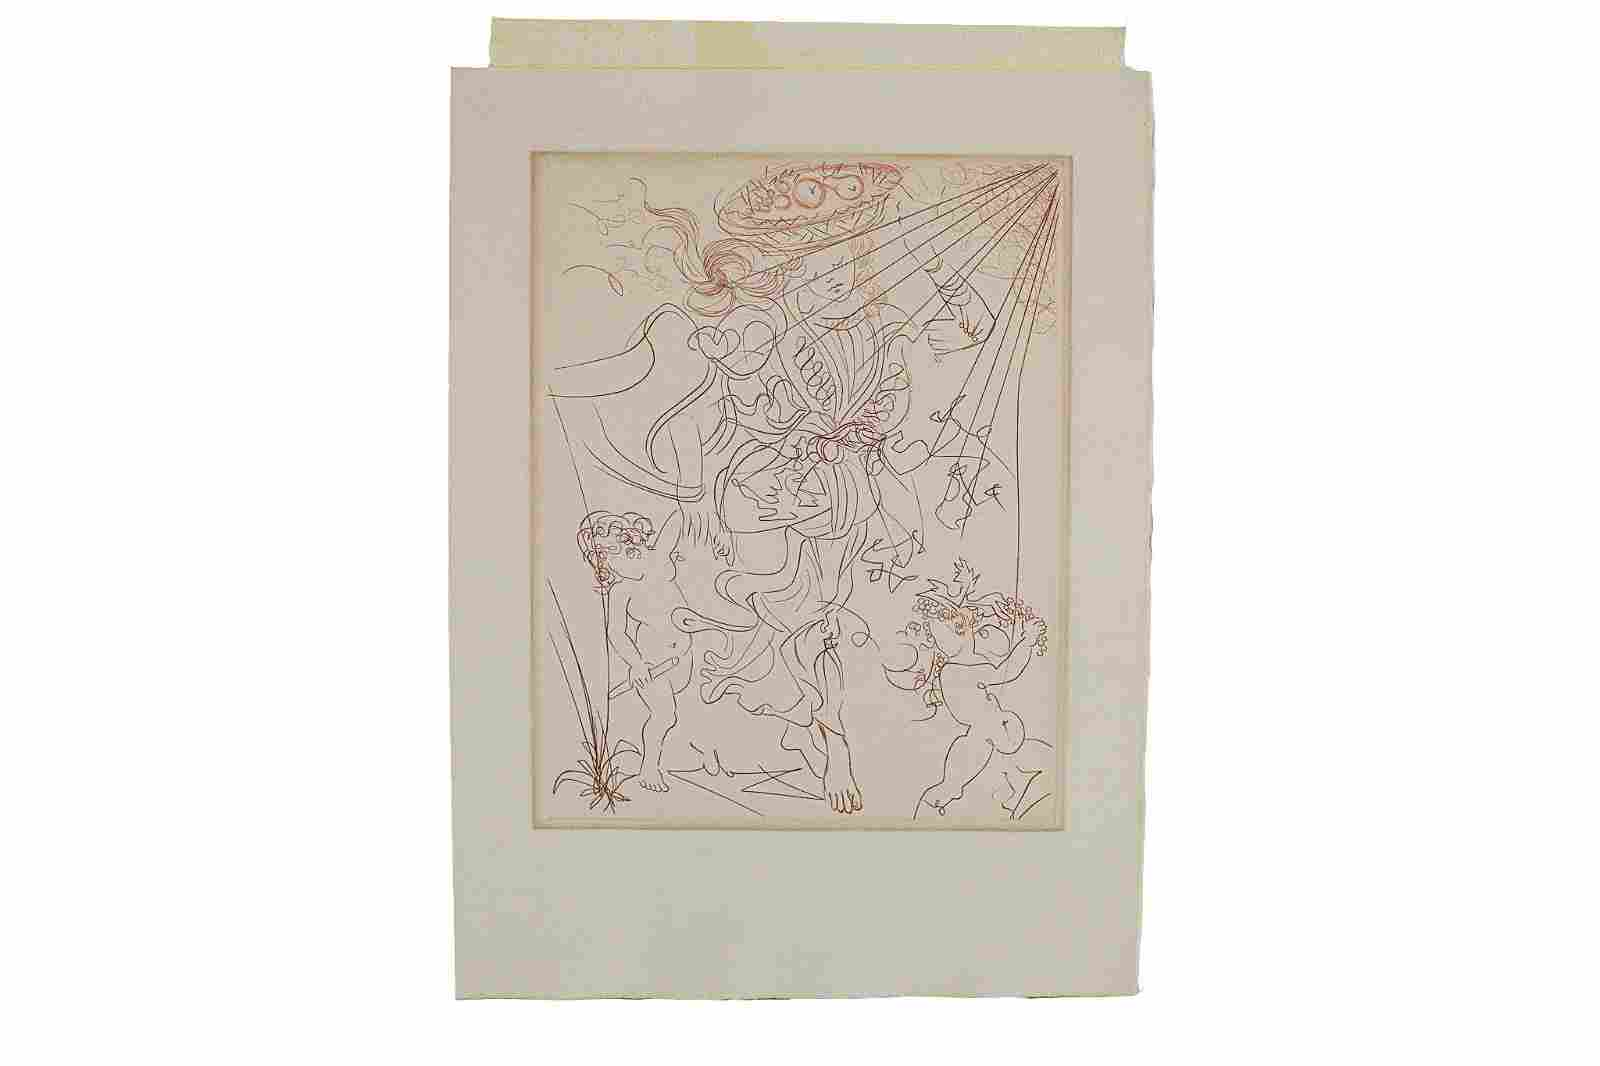 Salvador Dali (Spanish, 1904-1989), Etching on Paper